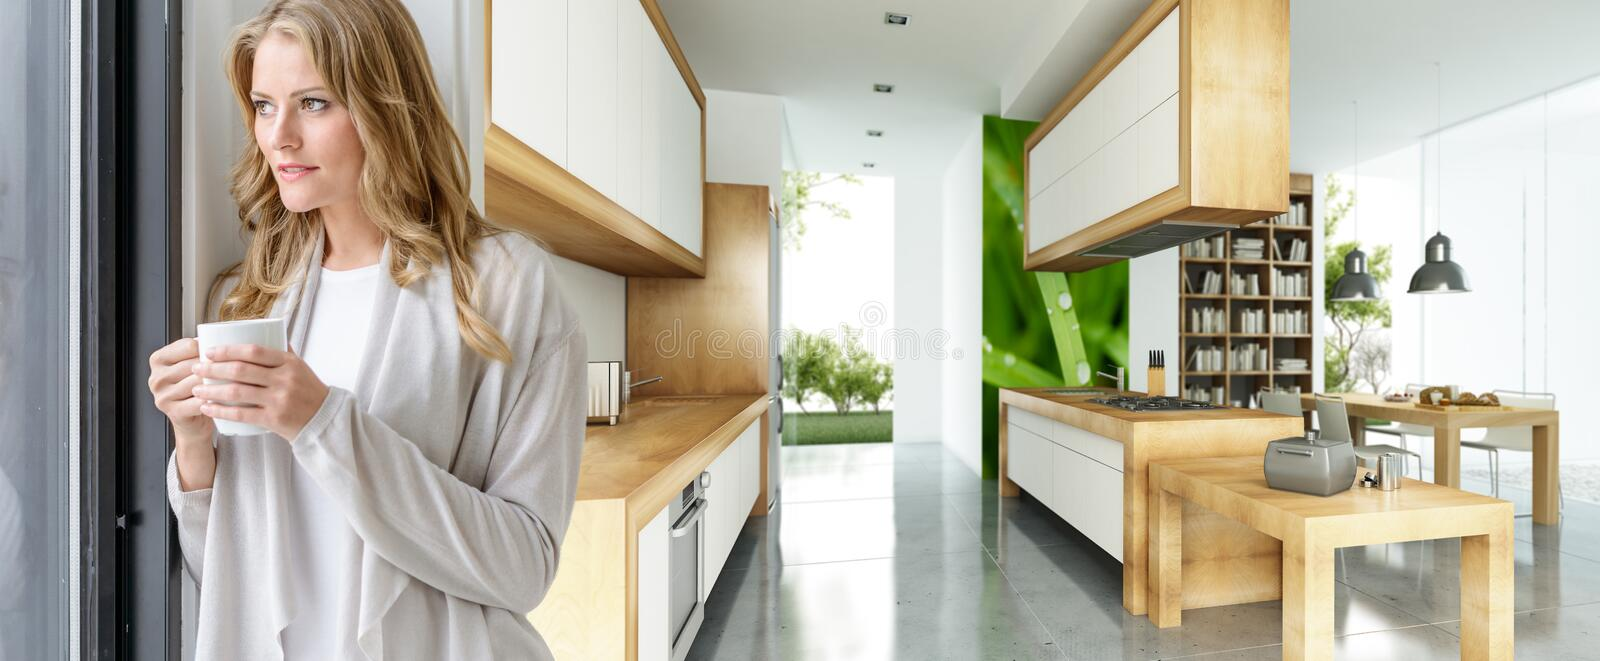 Woman with mug in modern house. Attractive woman having a hot drink in a beautiful modern house stock photos